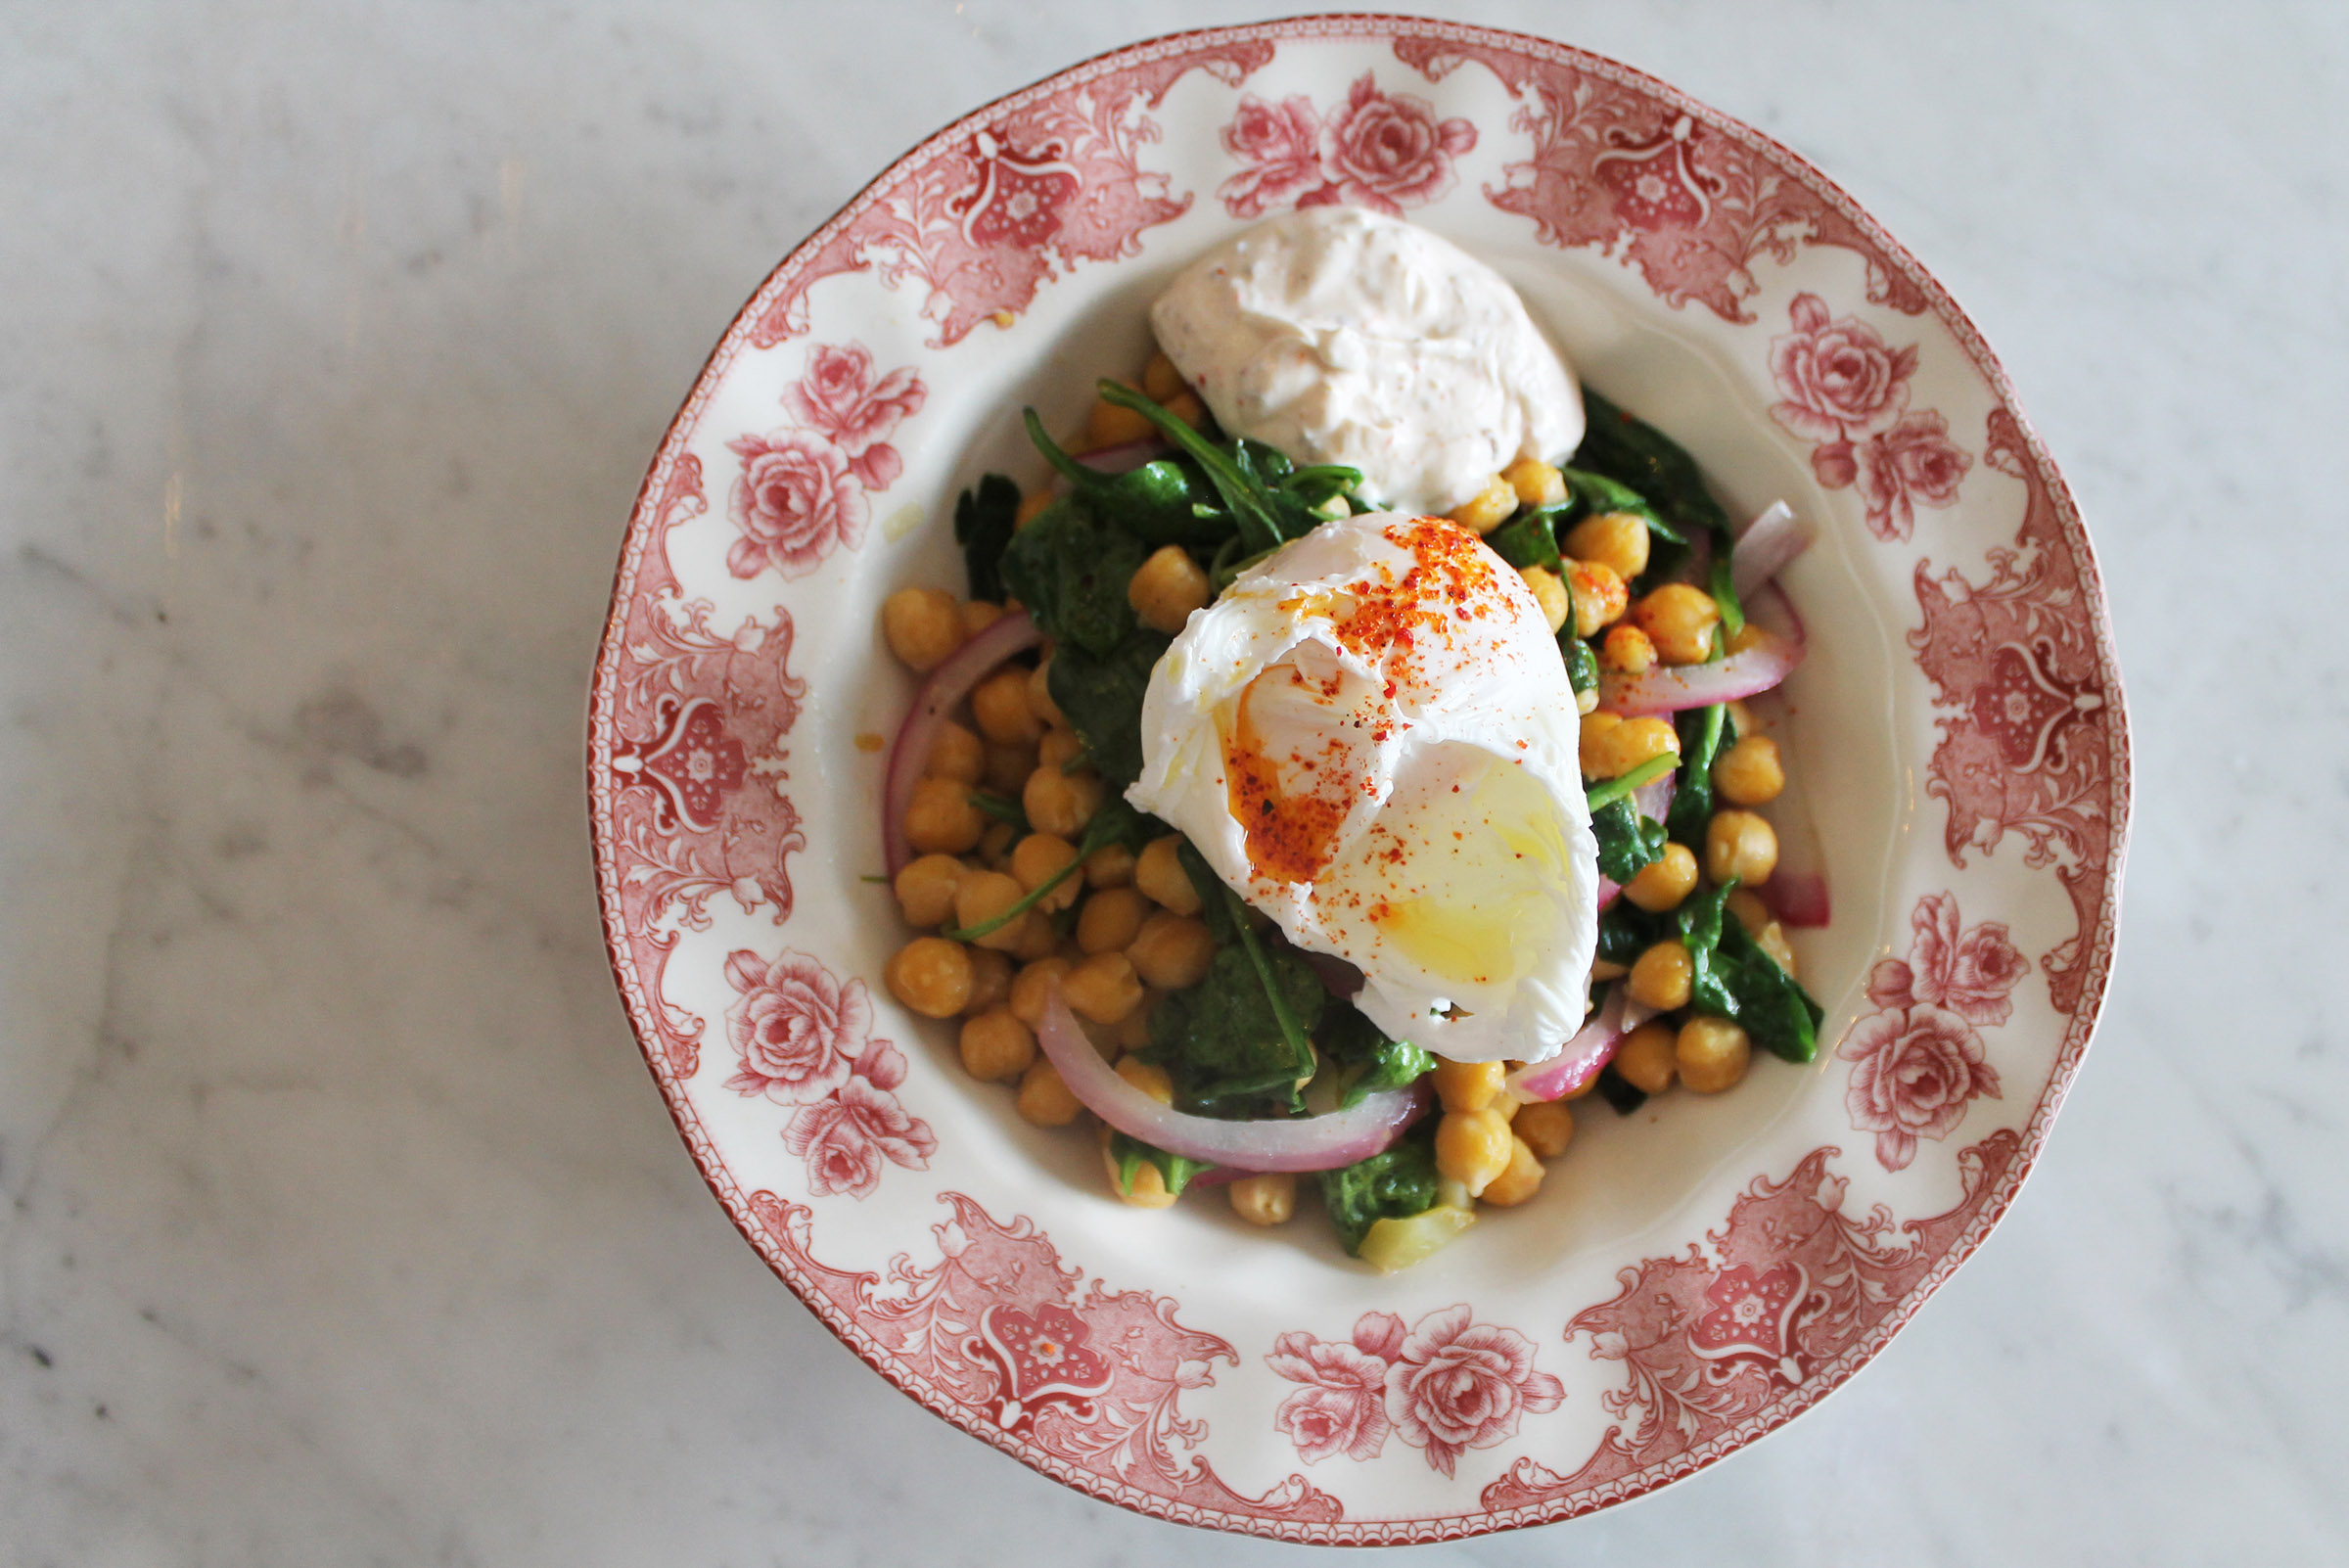 Warm Garbanzo Beans & Wilted Spinach: preserved lemon, spiced yogurt, poached egg